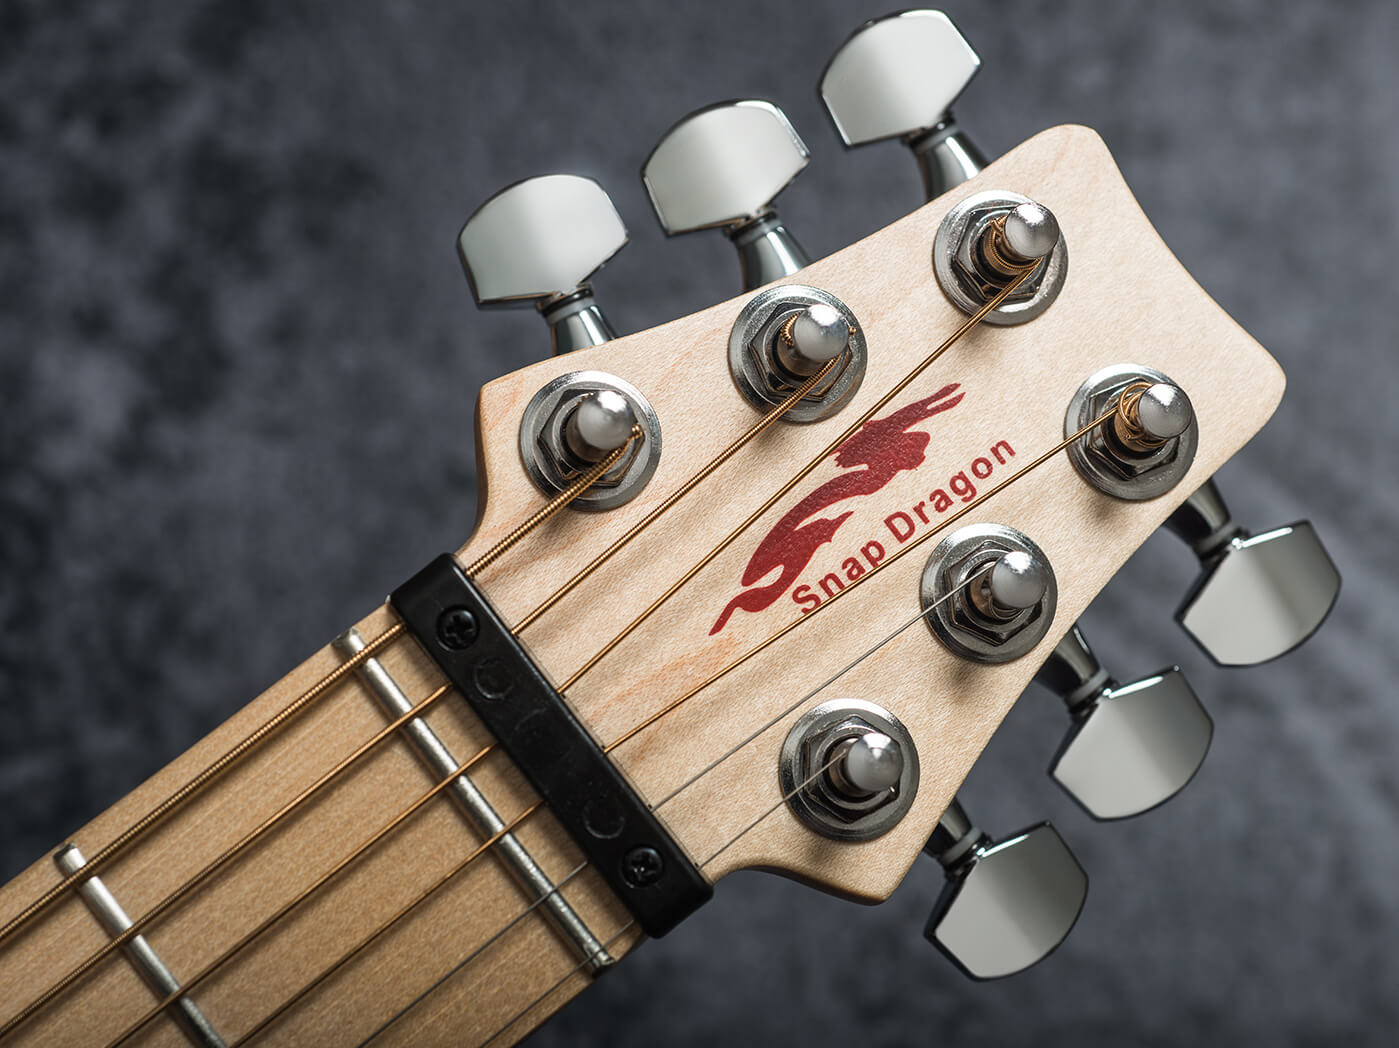 Snap Dragon travel guitars headstock